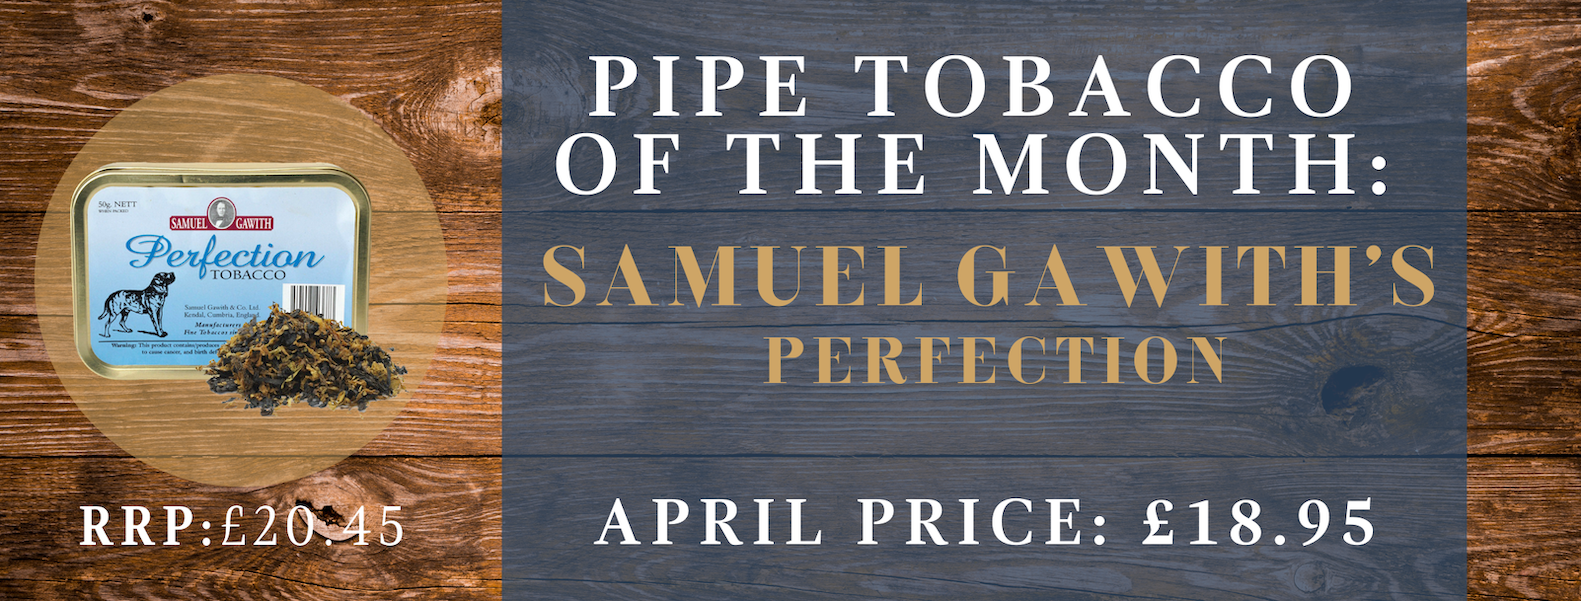 April pipe tobacco of the month banner